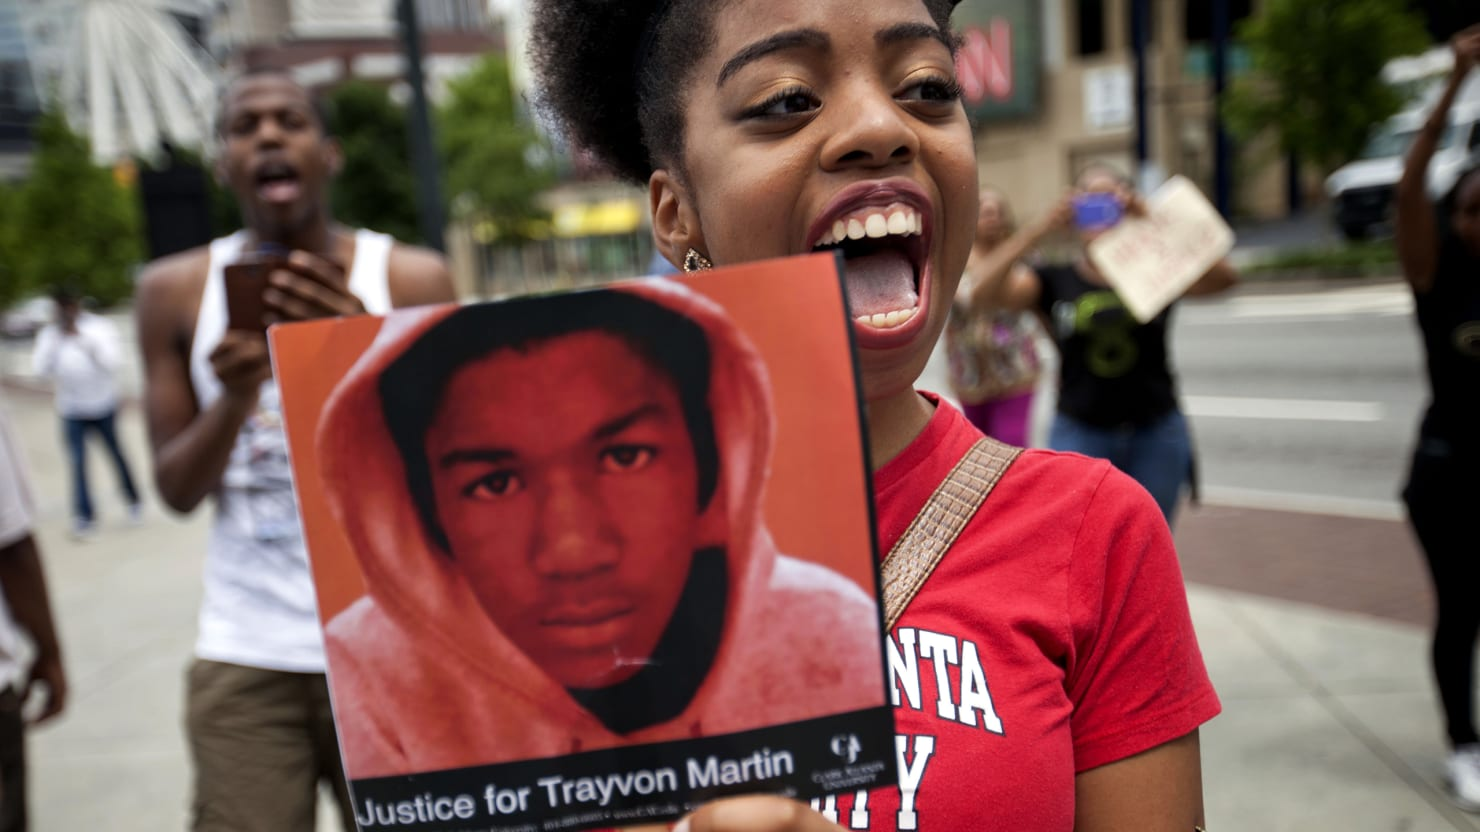 Christopher Darden Believes There May Be Justice Yet for Trayvon